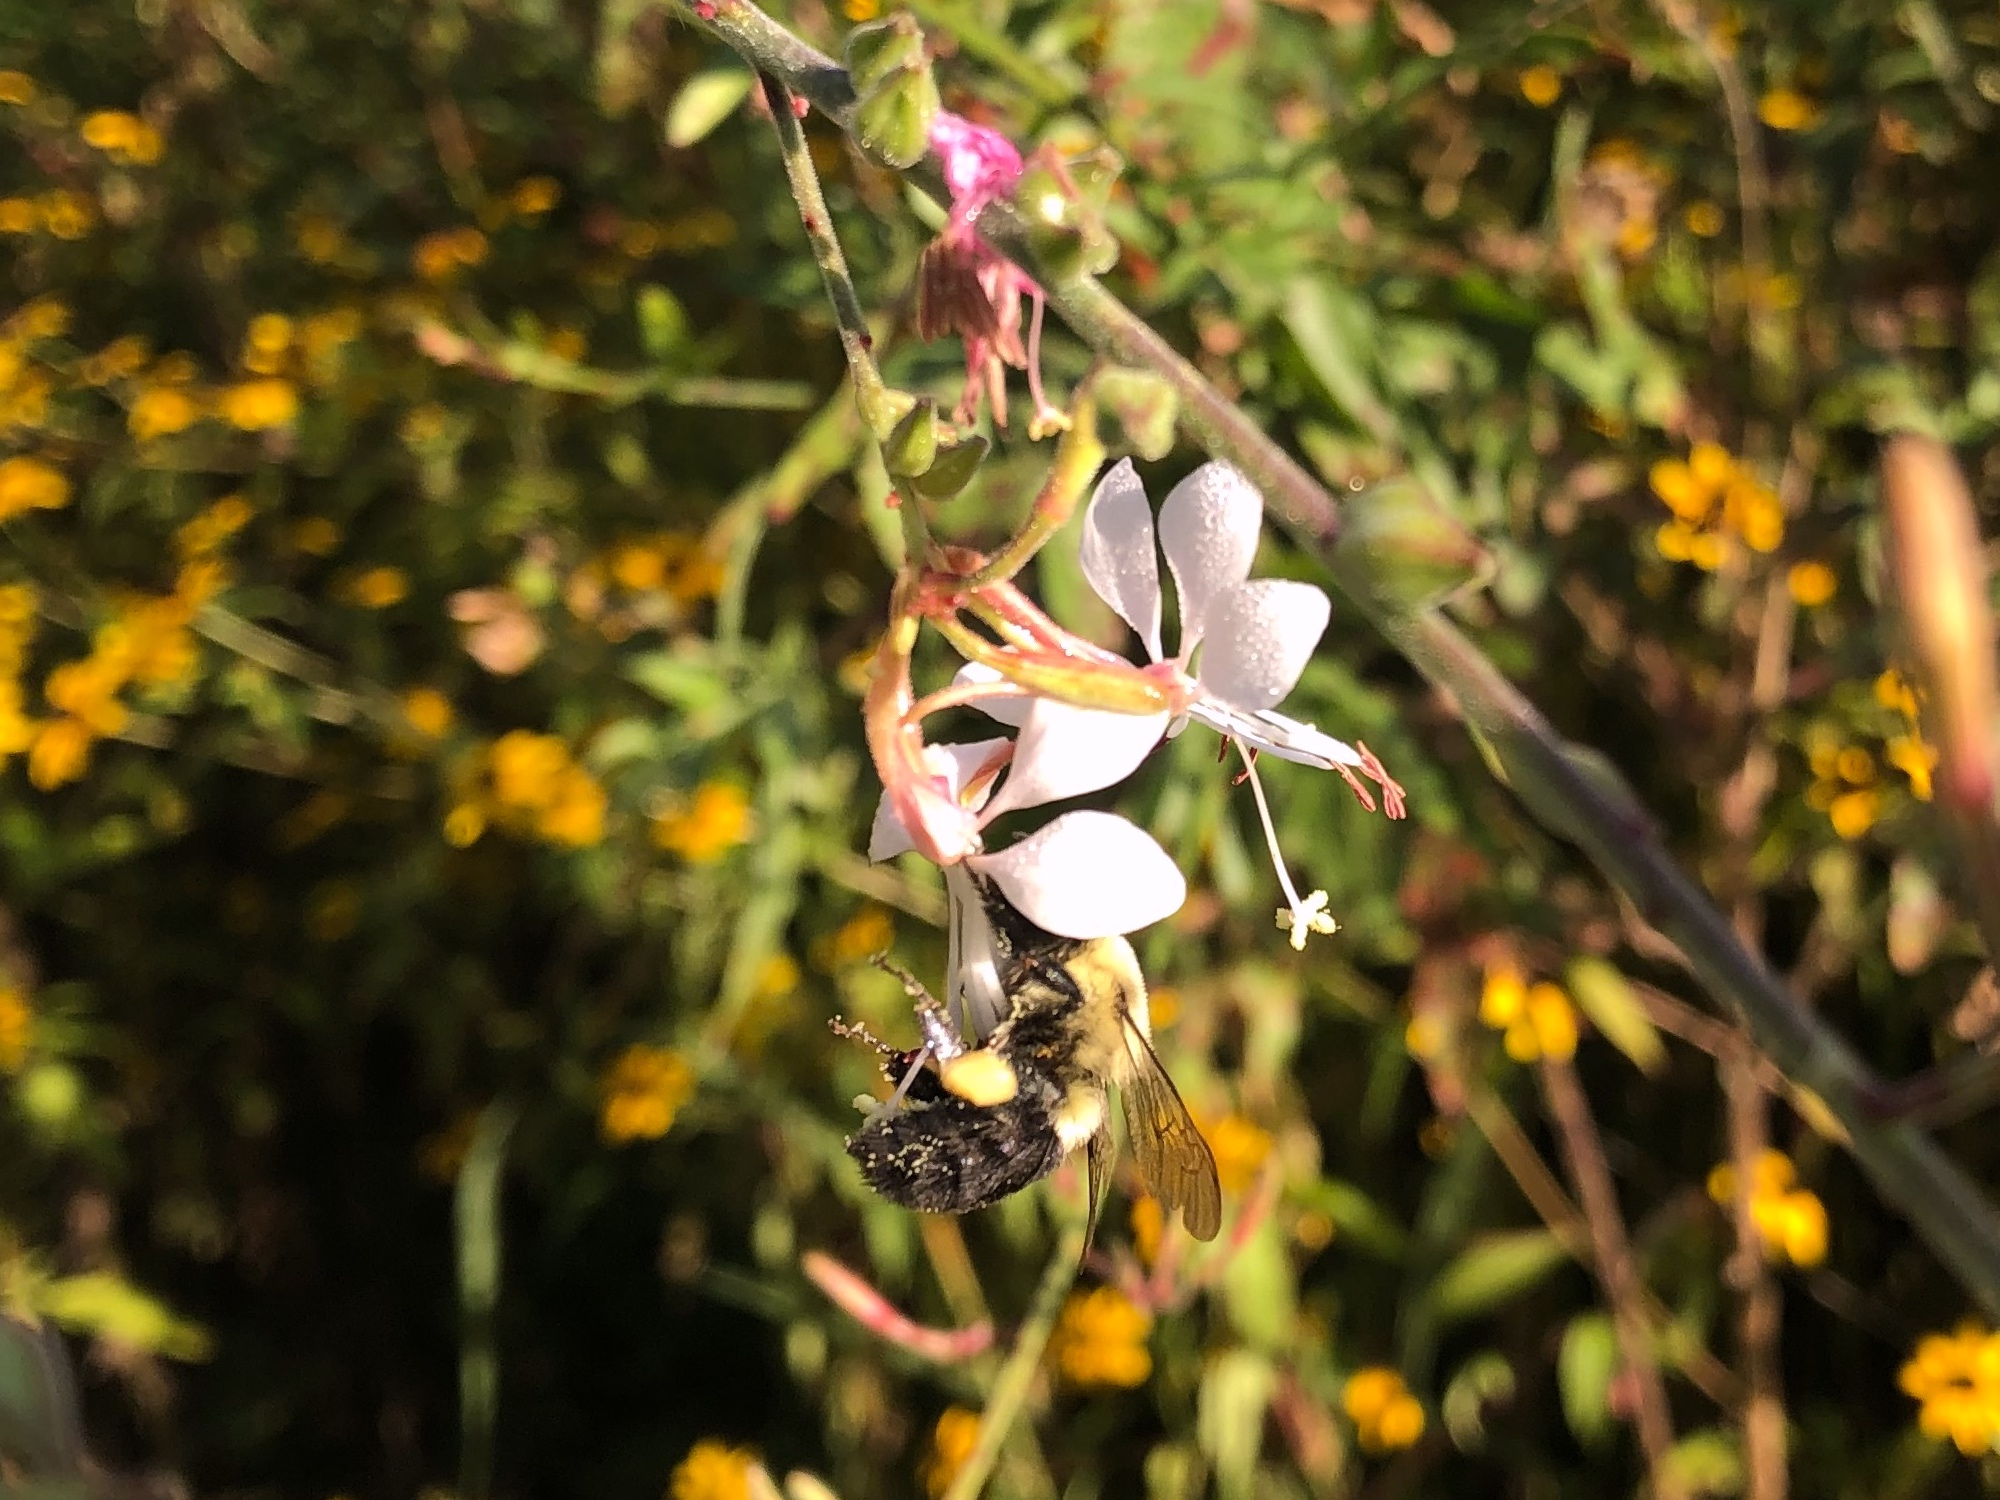 Bumblebee on Biennial Gaura on August 21, 2020.